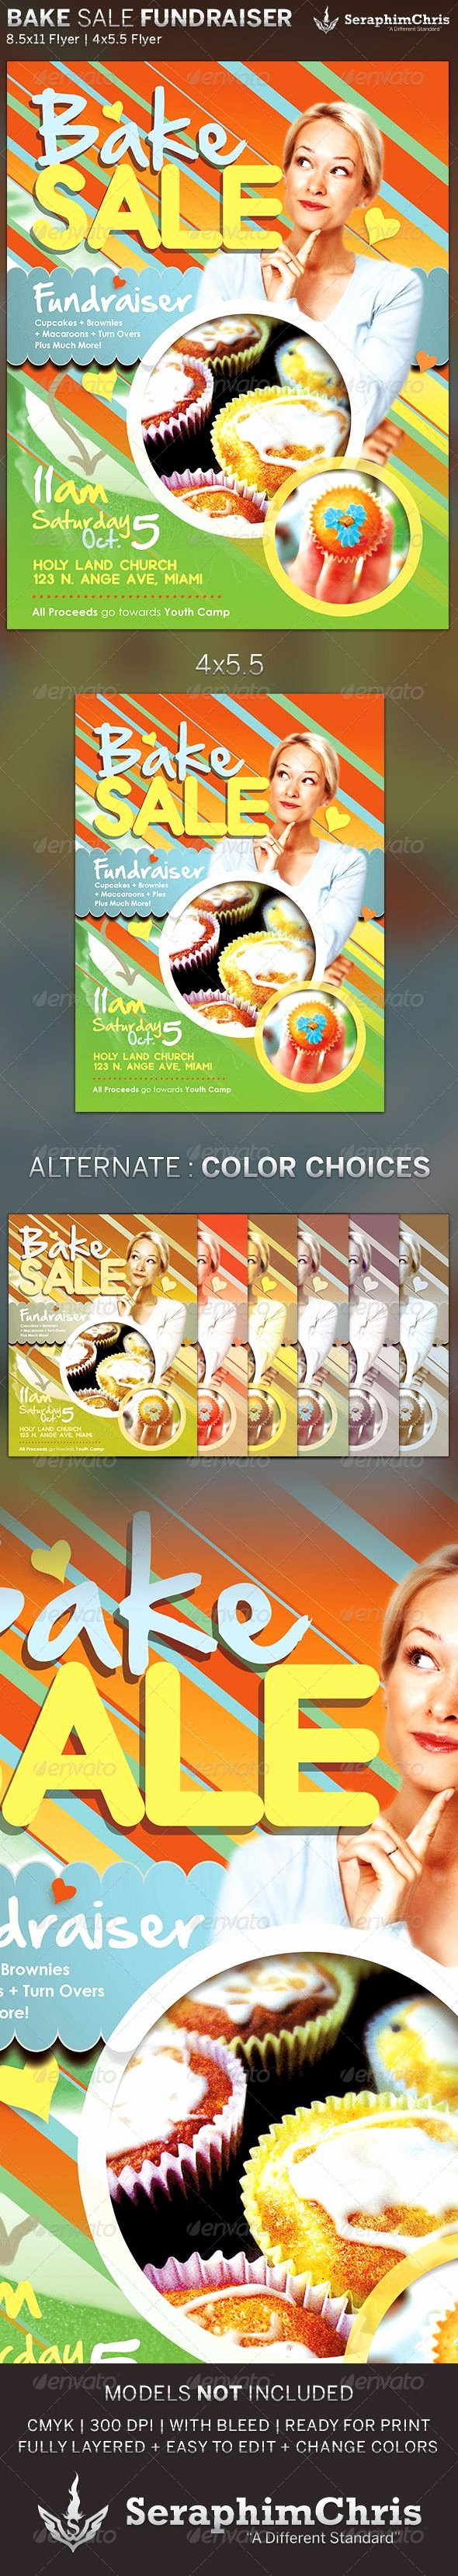 Bake Sale Fundraiser Flyer Template Lovely 15 Best Images About Flyers On Pinterest